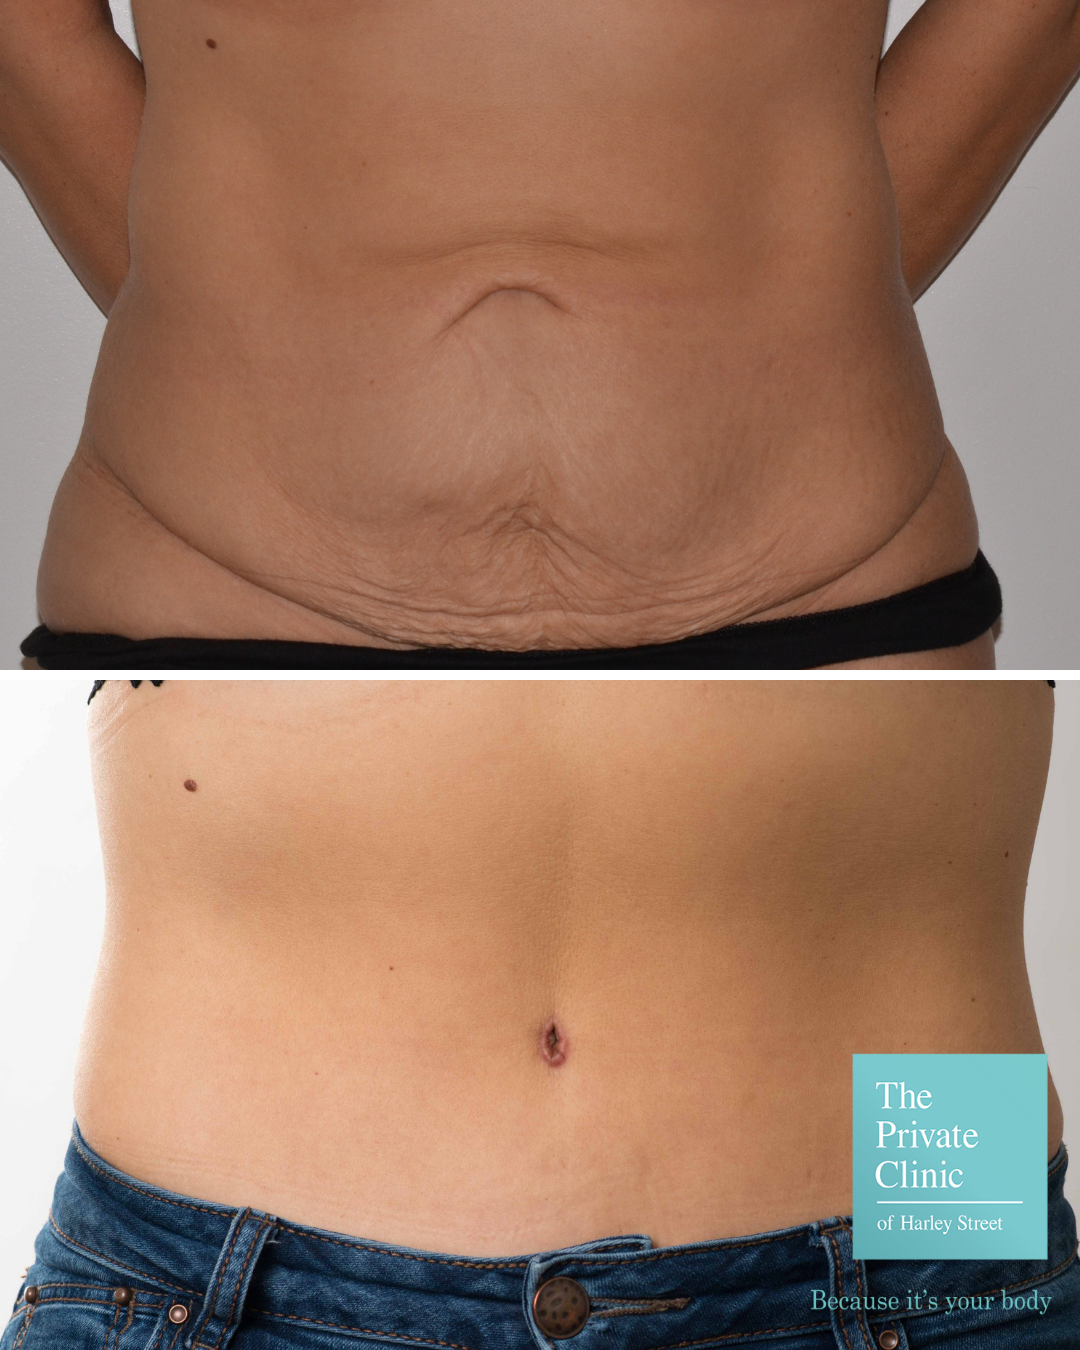 Tummy Tuck Before and After Photos, life after tummy tuck, tummy ...